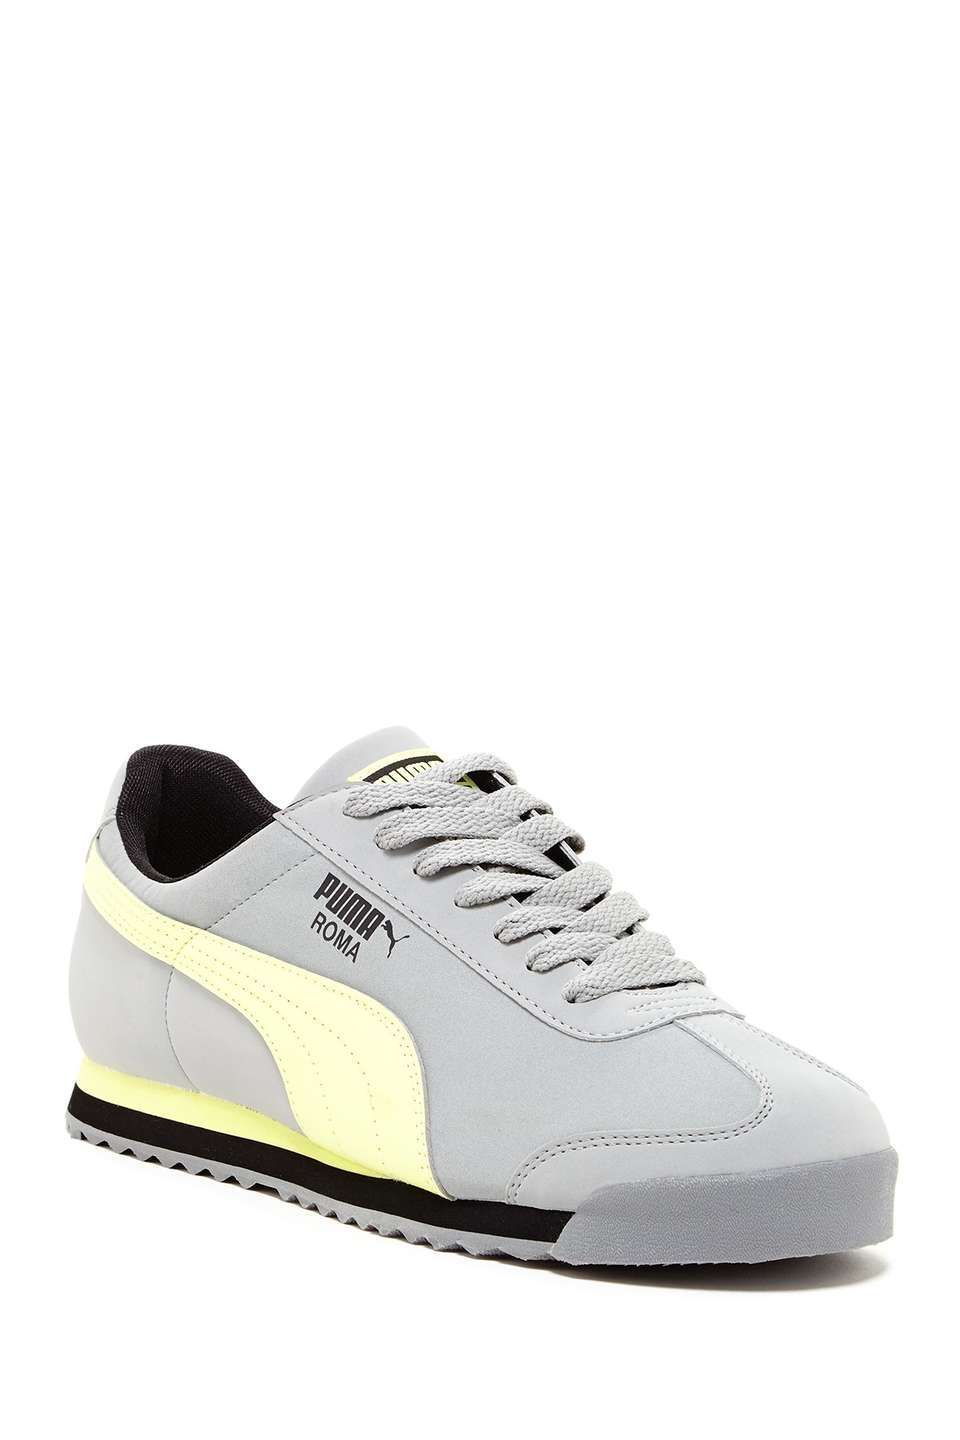 online retailer 6565e 144ad love old school sneakers   My Style   Puma sneakers, Shoes, Shoe boots